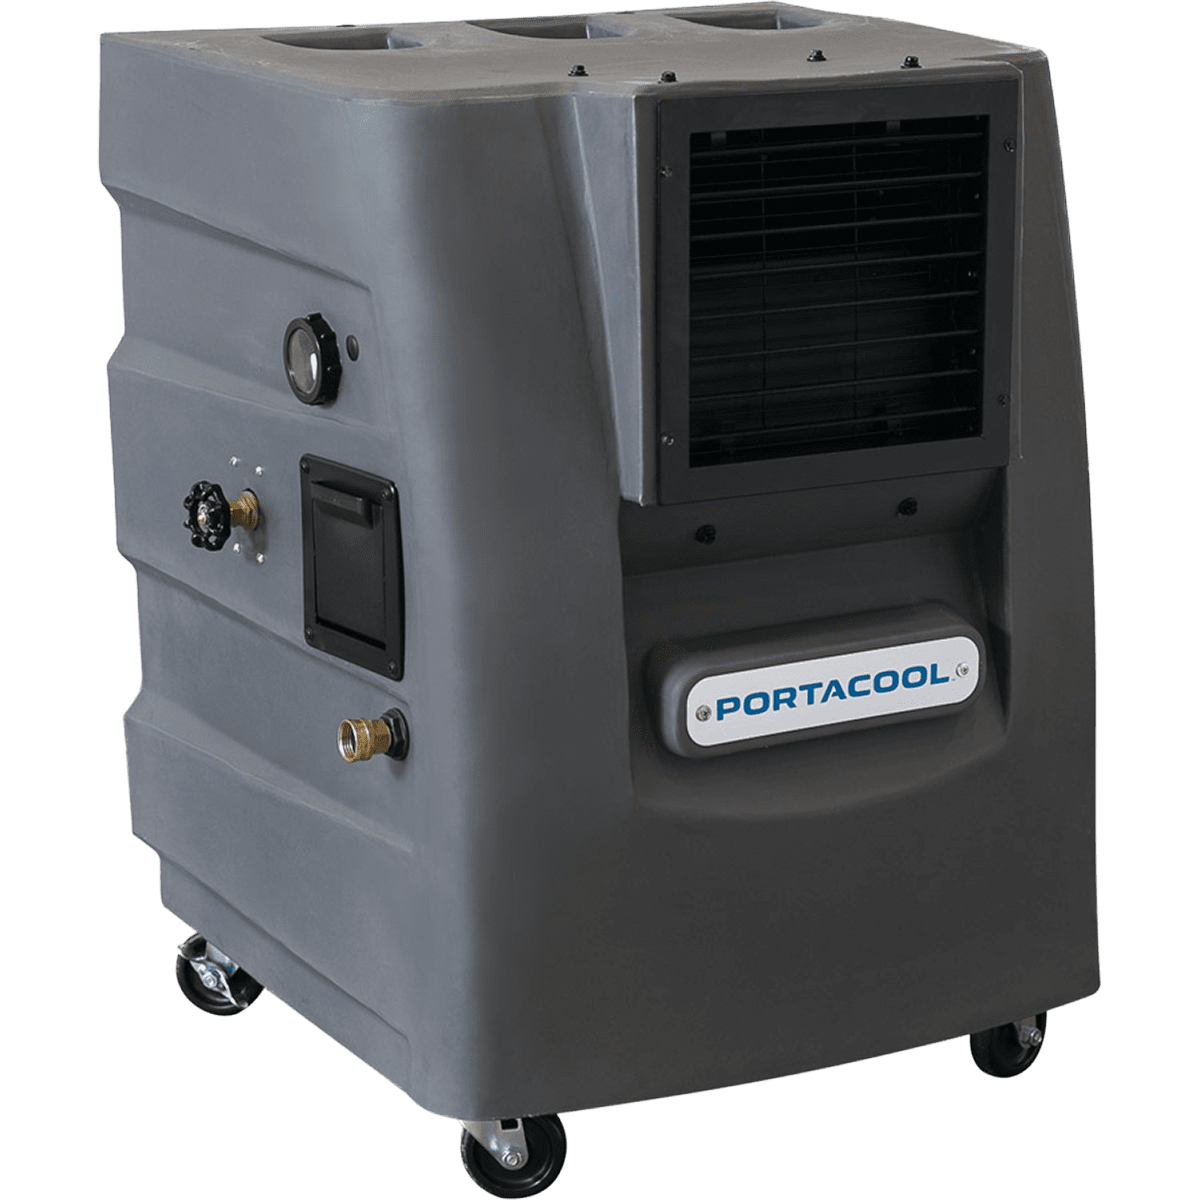 Portacool Cyclone 120 Portable Evaporative Cooler Model: PACCY120GA1